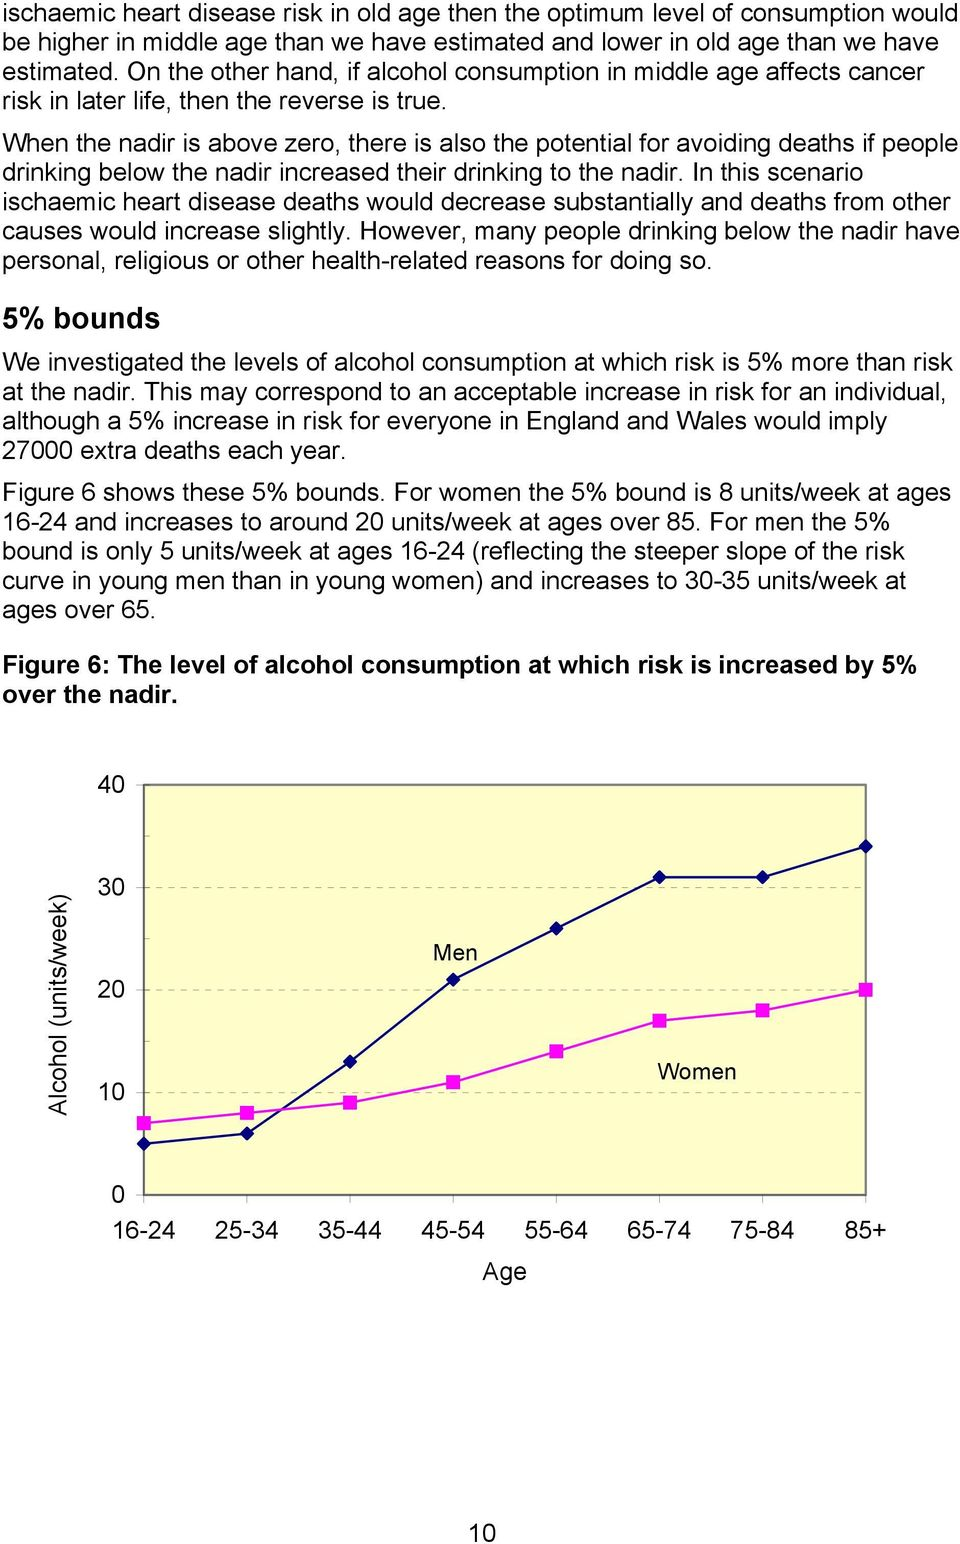 When the nadir is above zero, there is also the potential for avoiding deaths if people drinking below the nadir increased their drinking to the nadir.